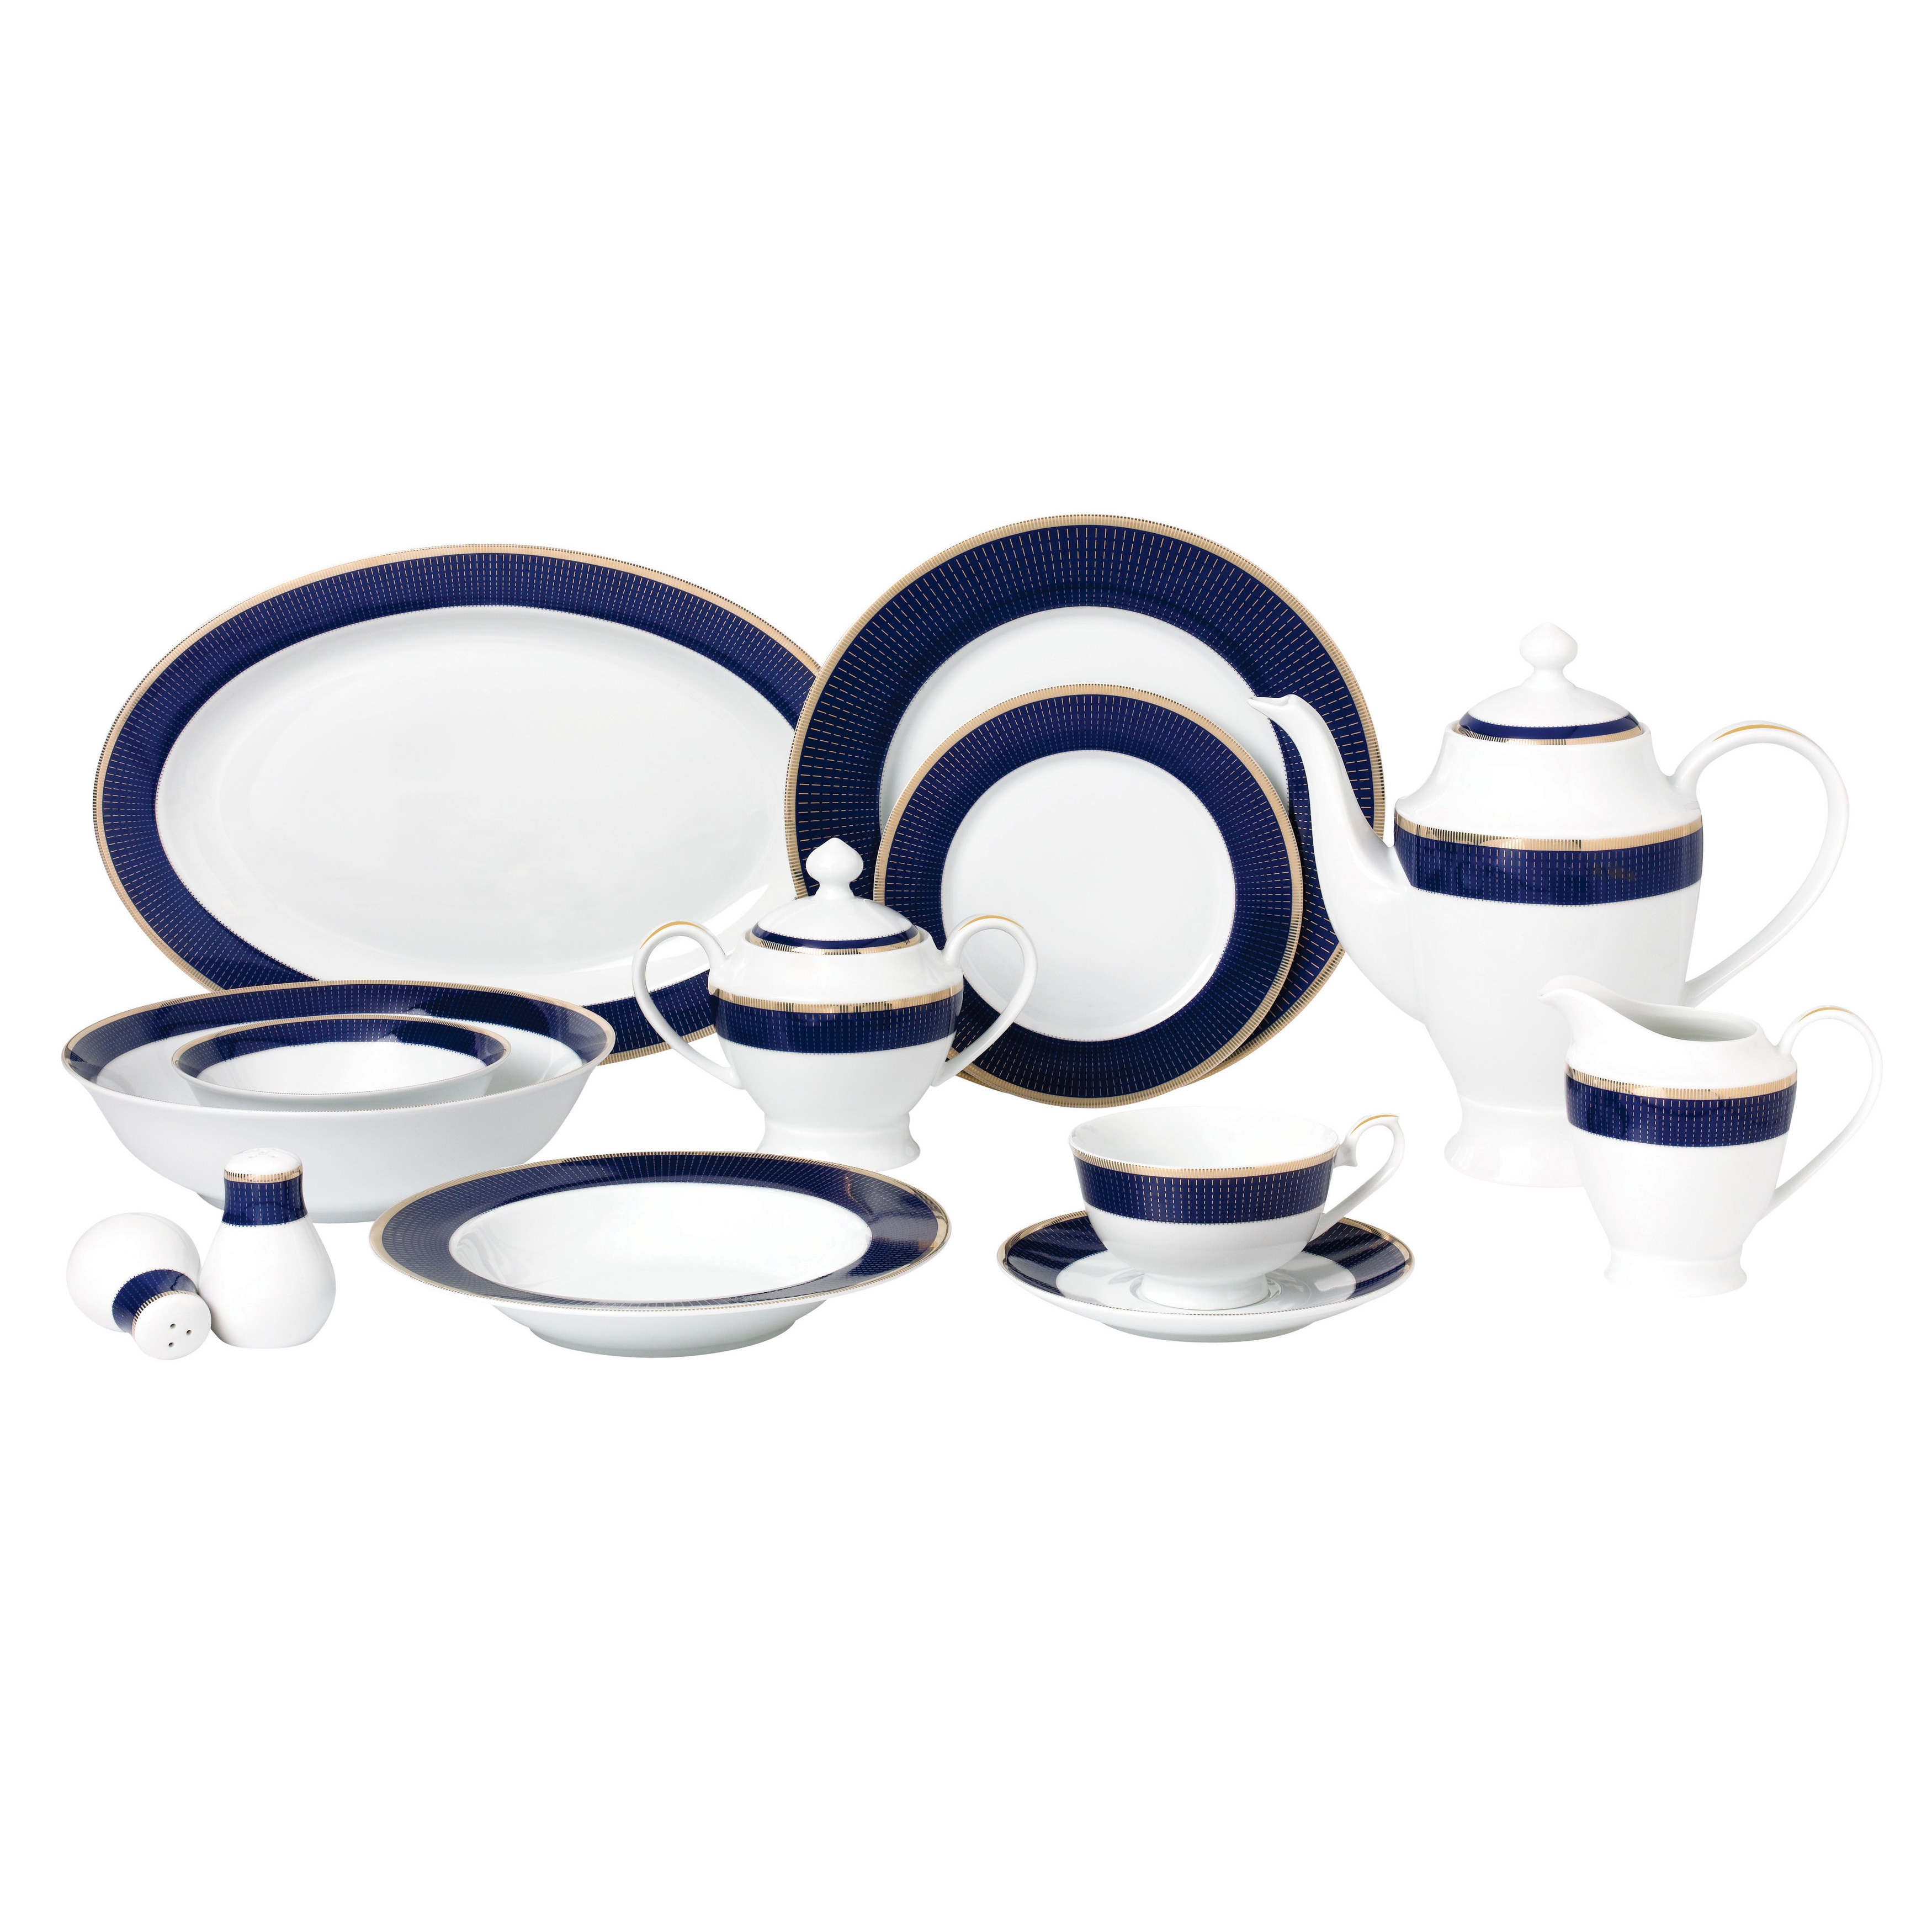 a889d6caefa2 Gold Dinnerware | Find Great Kitchen & Dining Deals Shopping at ...